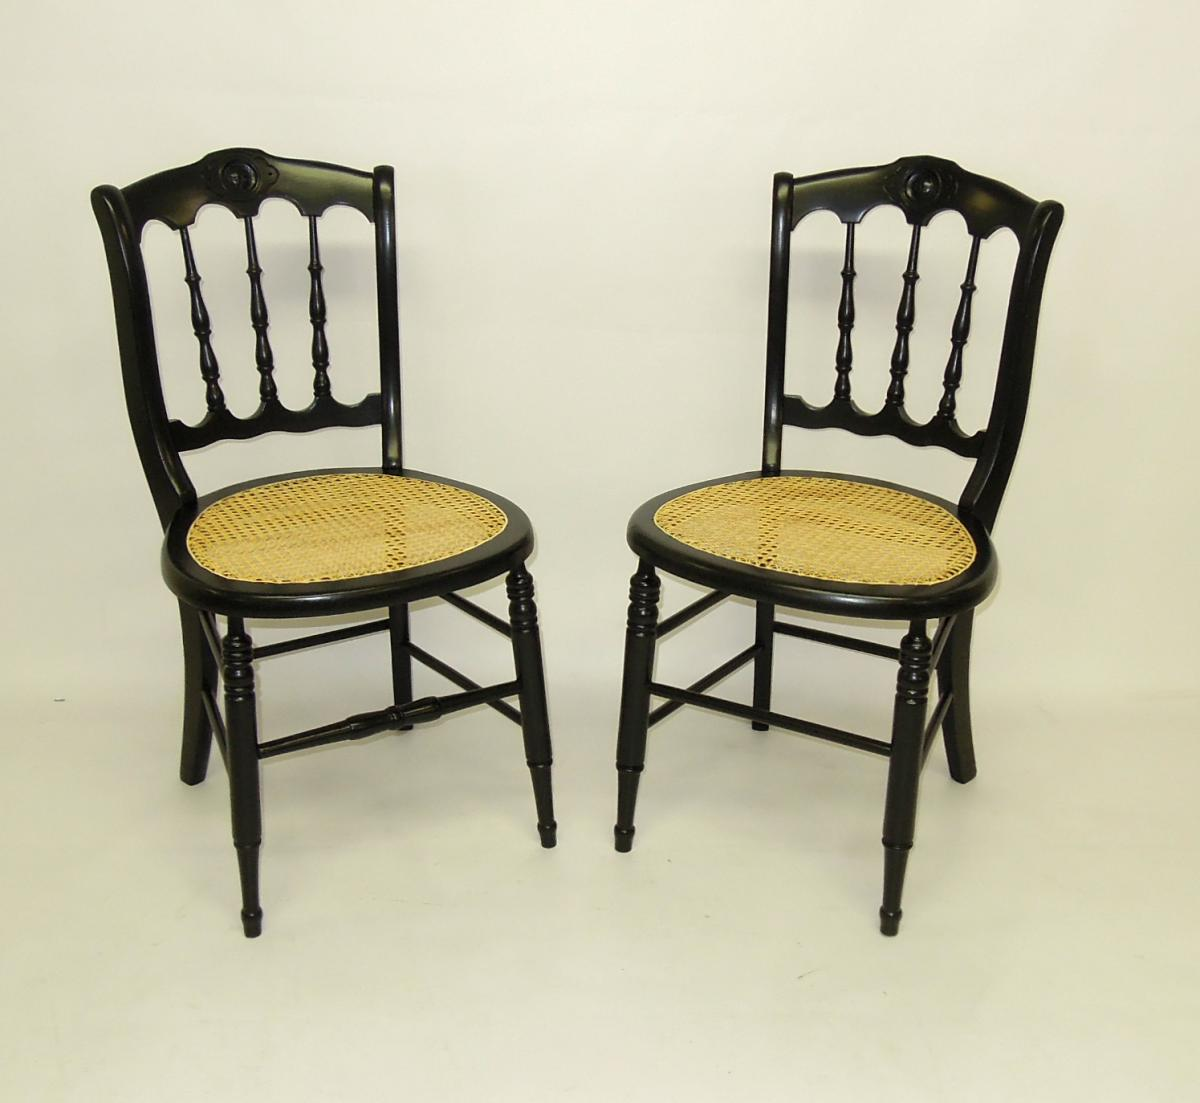 Refinished and re-caned antique dining chairs